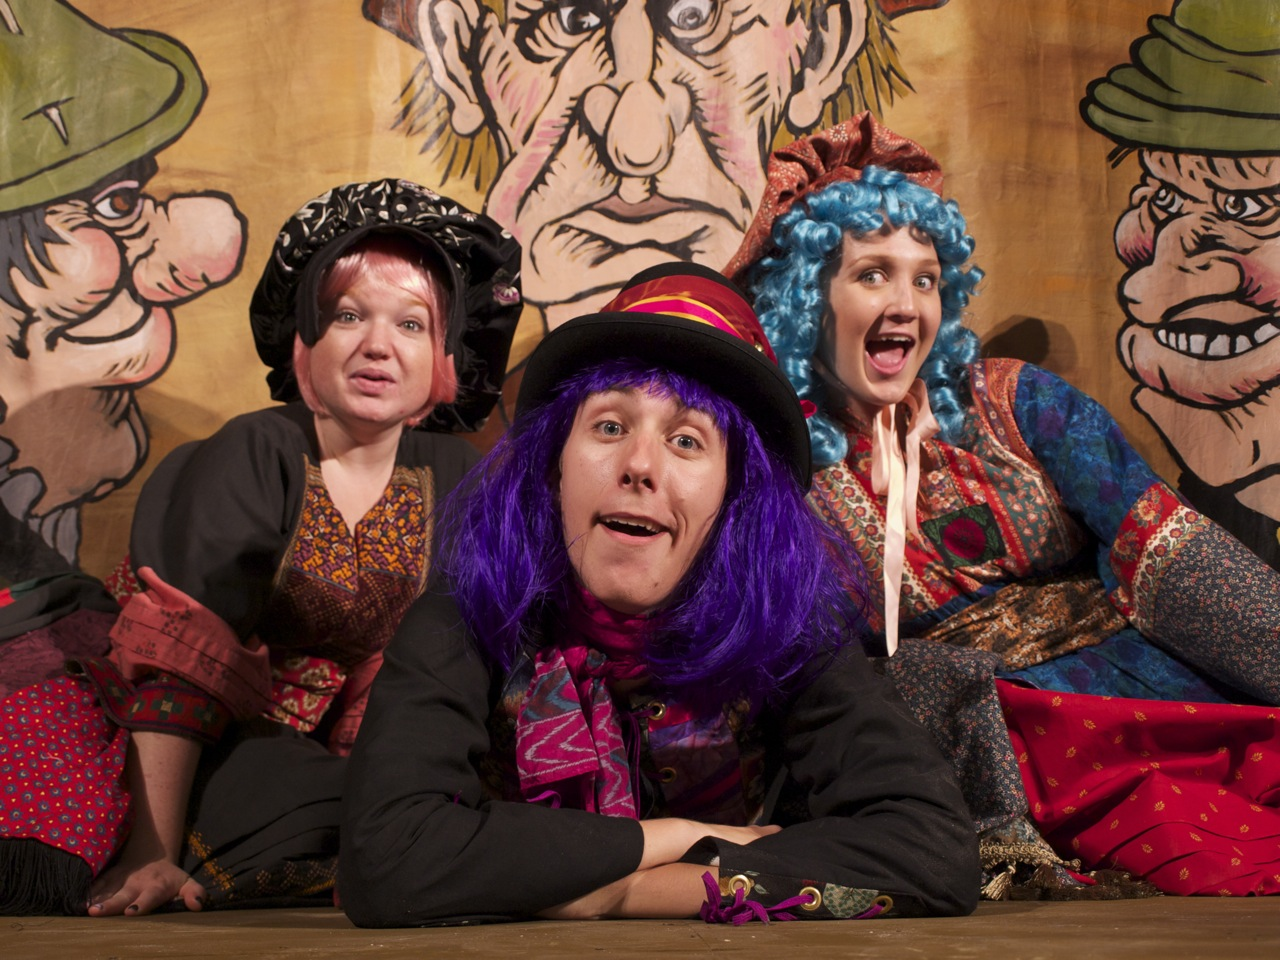 THE MERRYWINKLE INTERNATIONAL TROUPE OF VAGABONDS PERFORMS A DELICIOUS POTPOURRI OF FANTASTICAL FAIRY TALES AND ASTONISHING FOLK LEGENDS